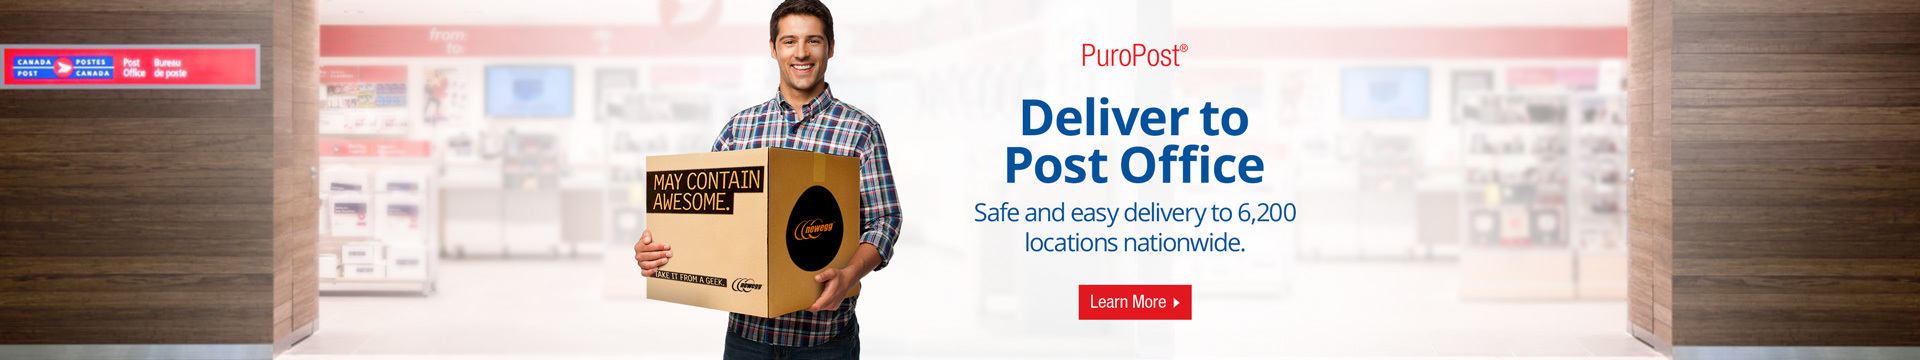 Deliver to Post Office